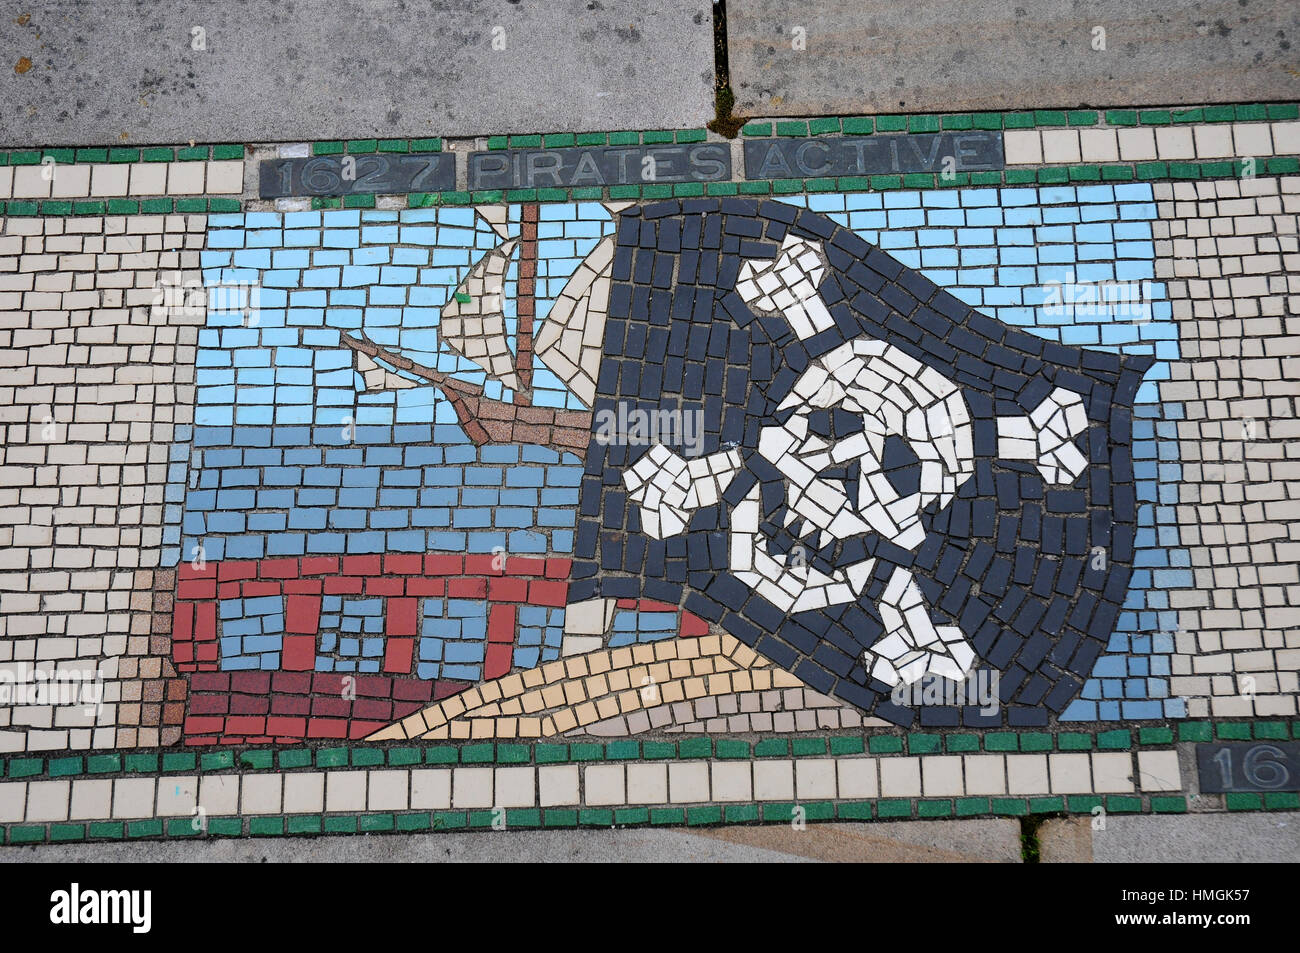 Mosaic pavement depicting the year pirates were active around Barnstaple. - Stock Image